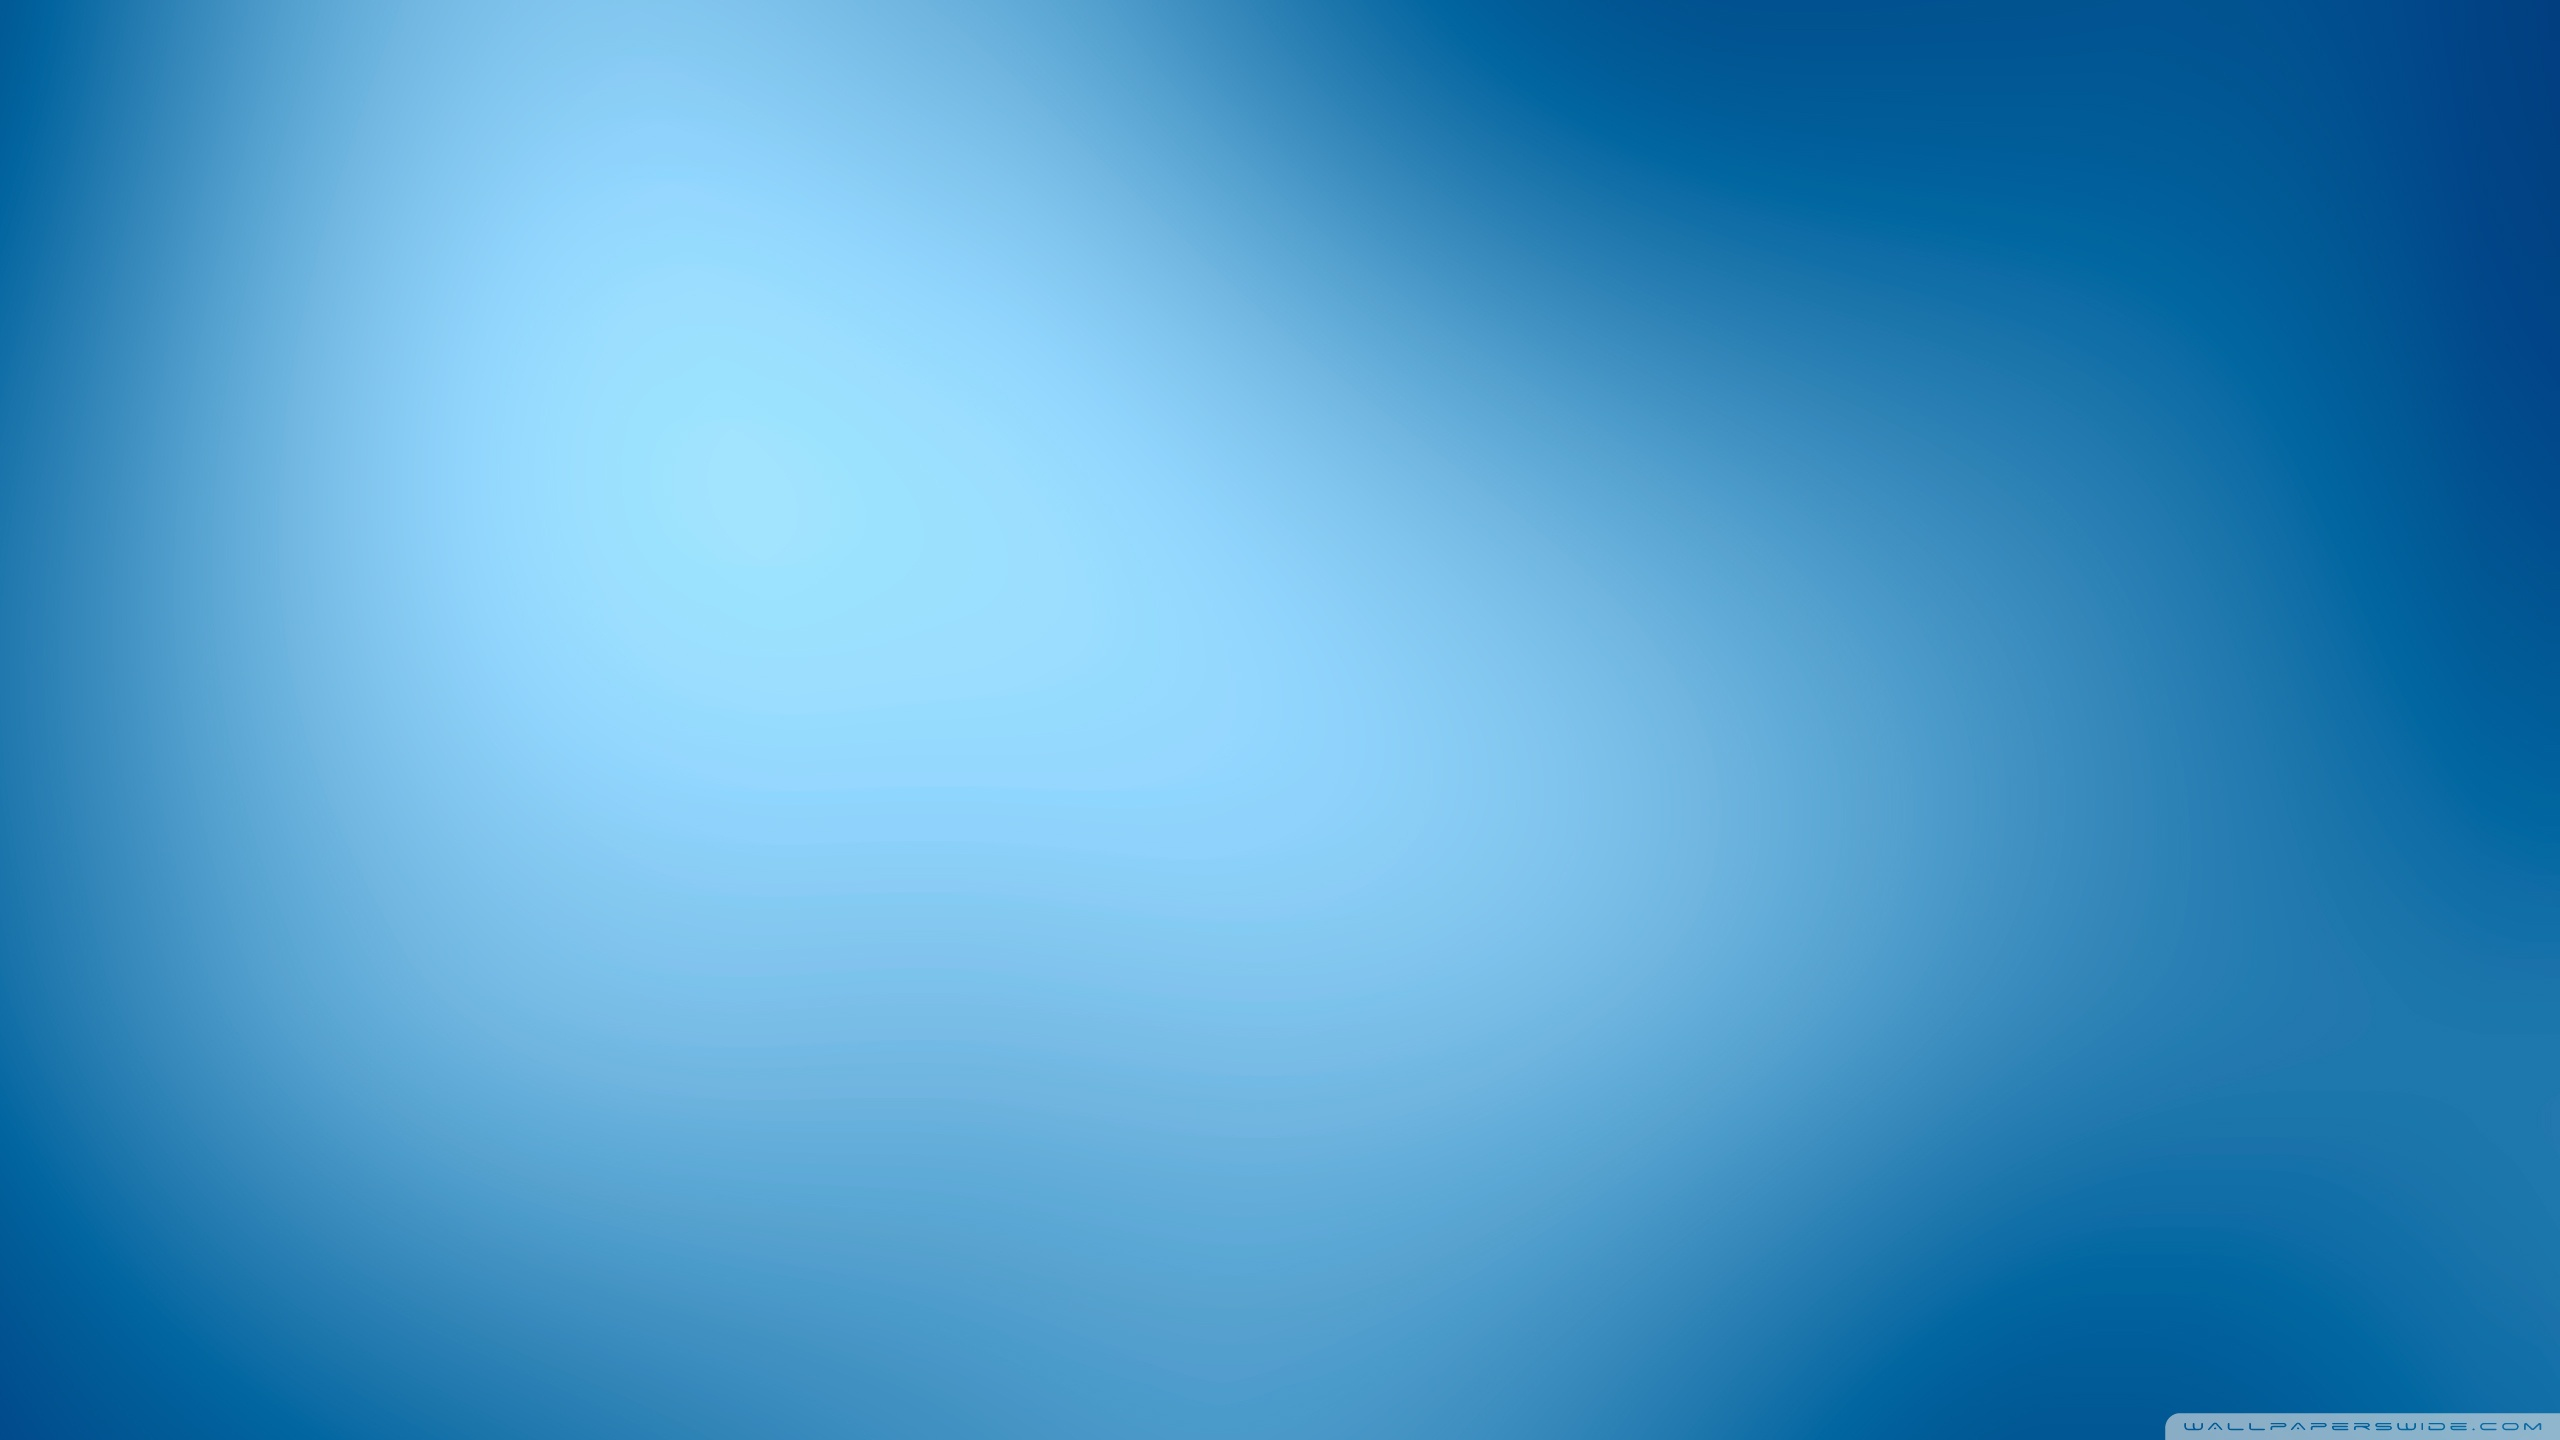 Background image 2560 x 1440 - Simple Backgrounds